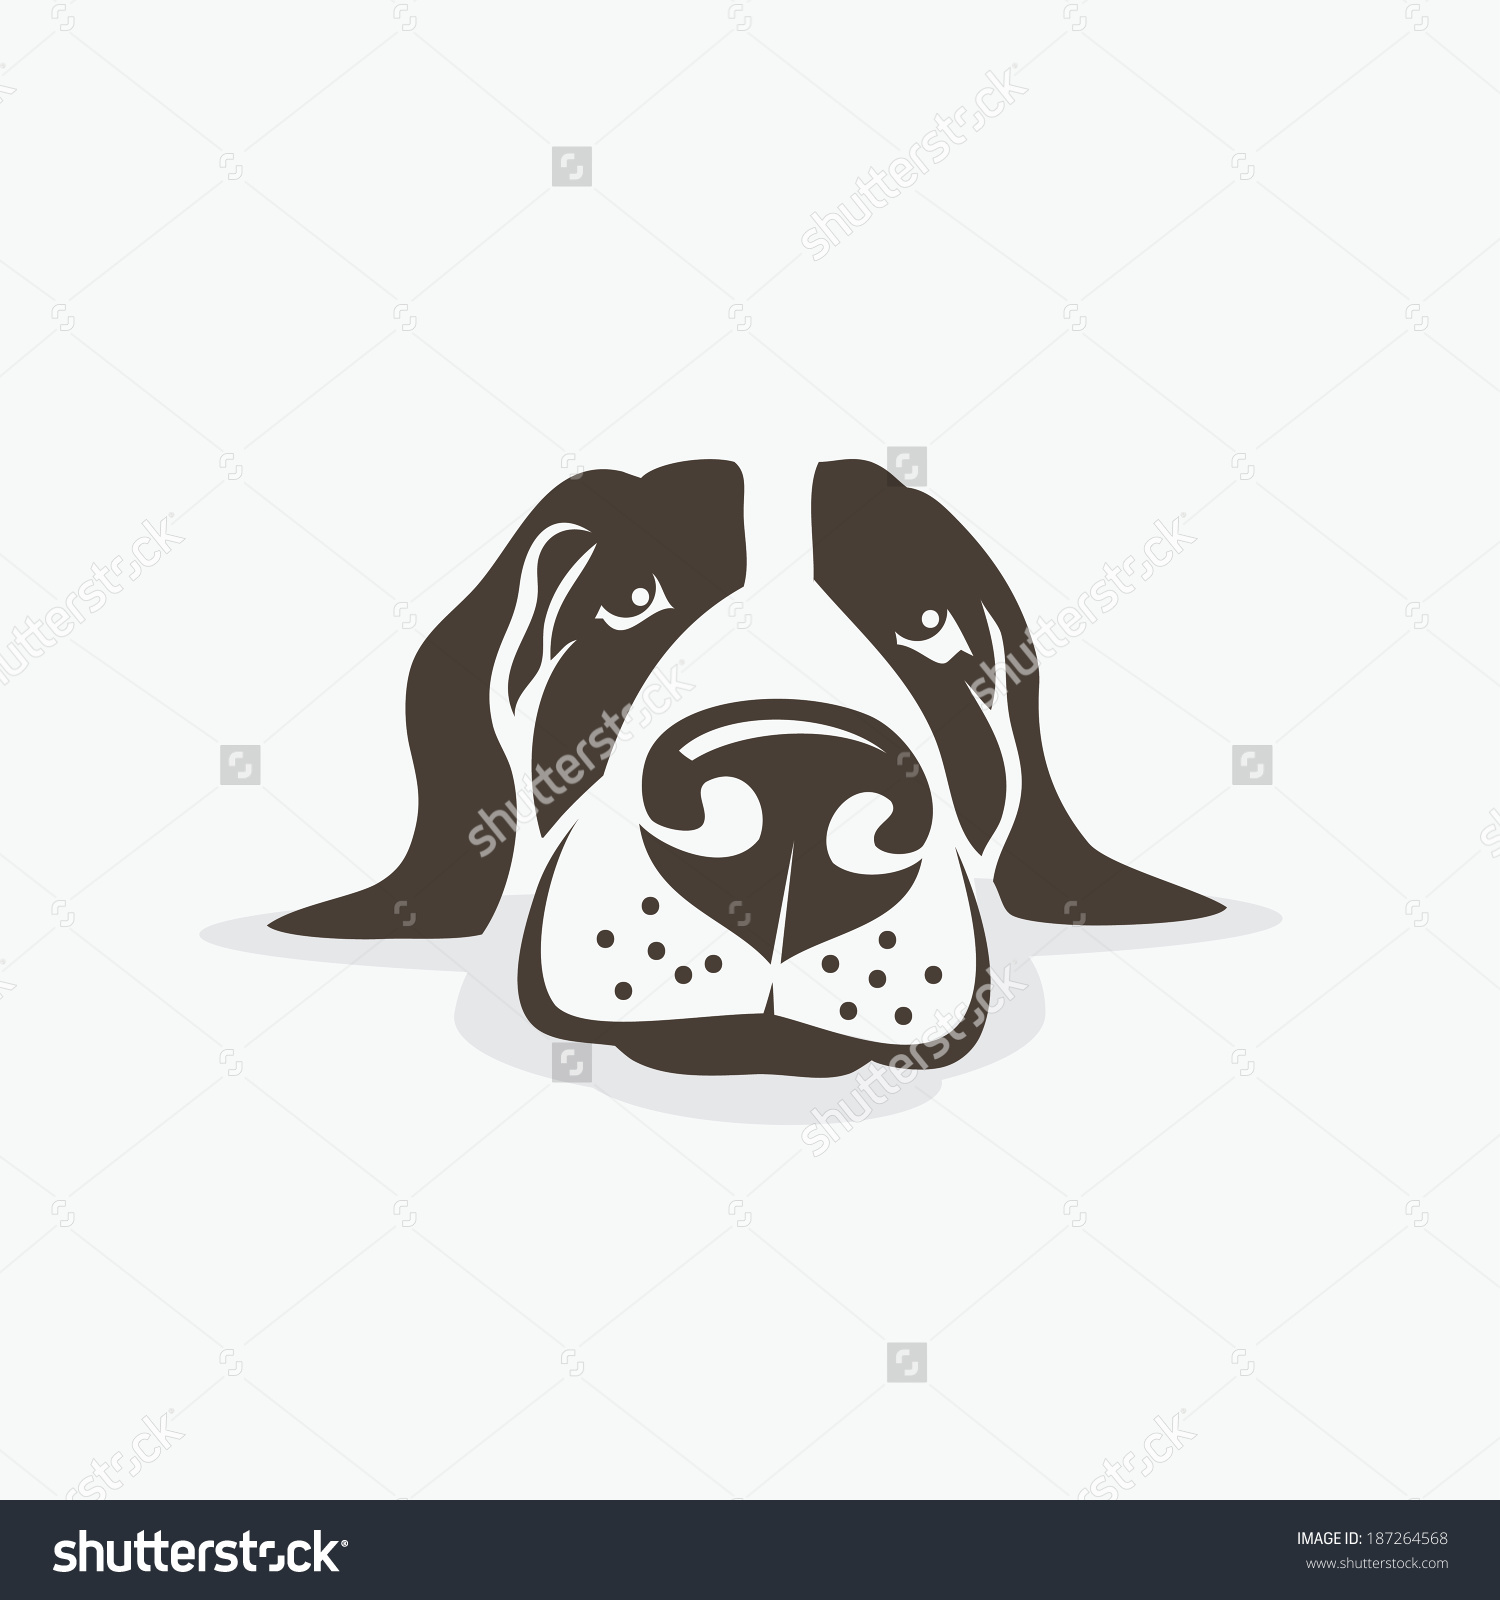 Clipart long nose dog heads.